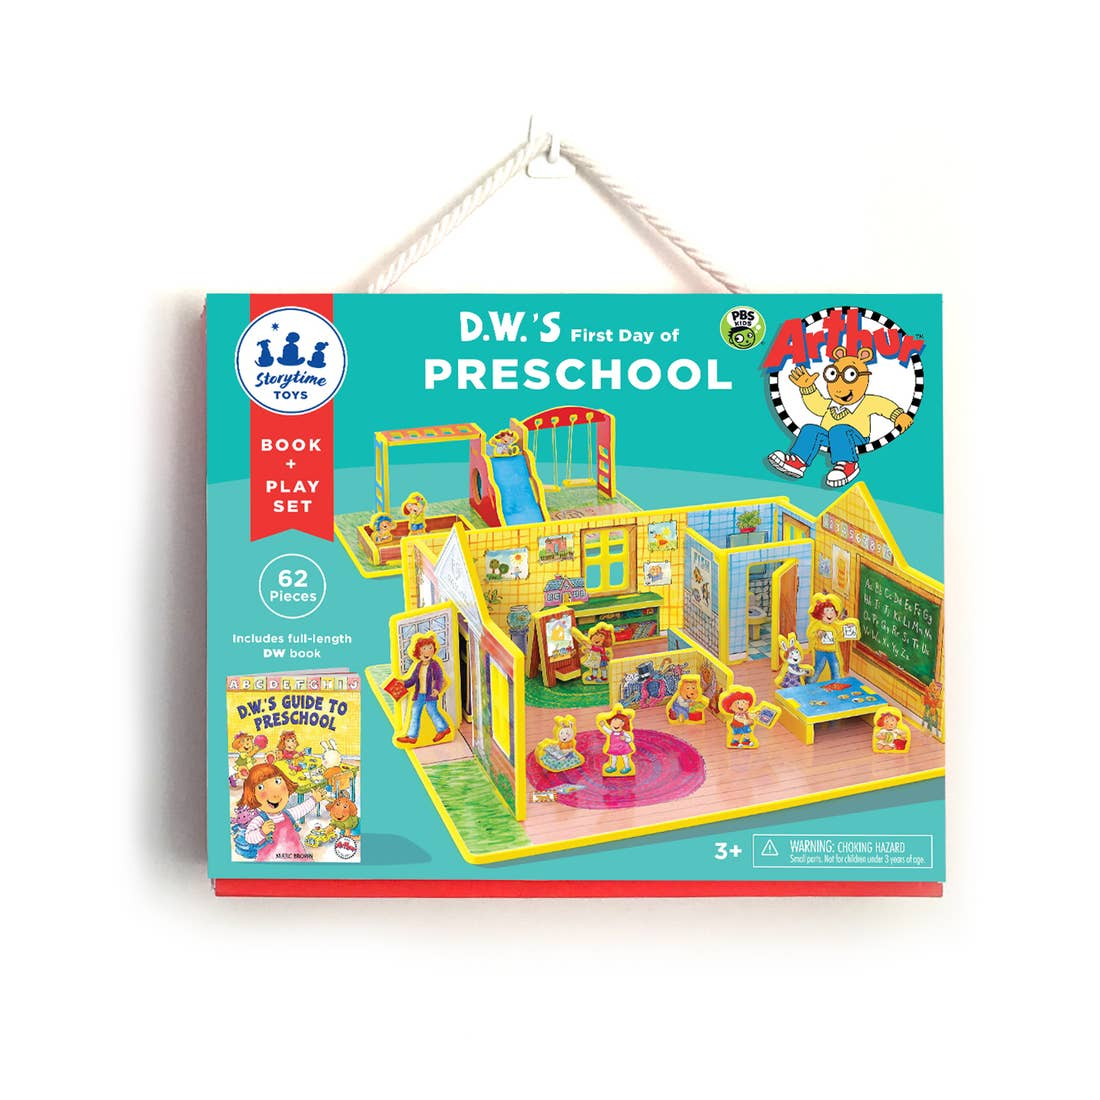 DW's First Day of Preschool Book and Play Set